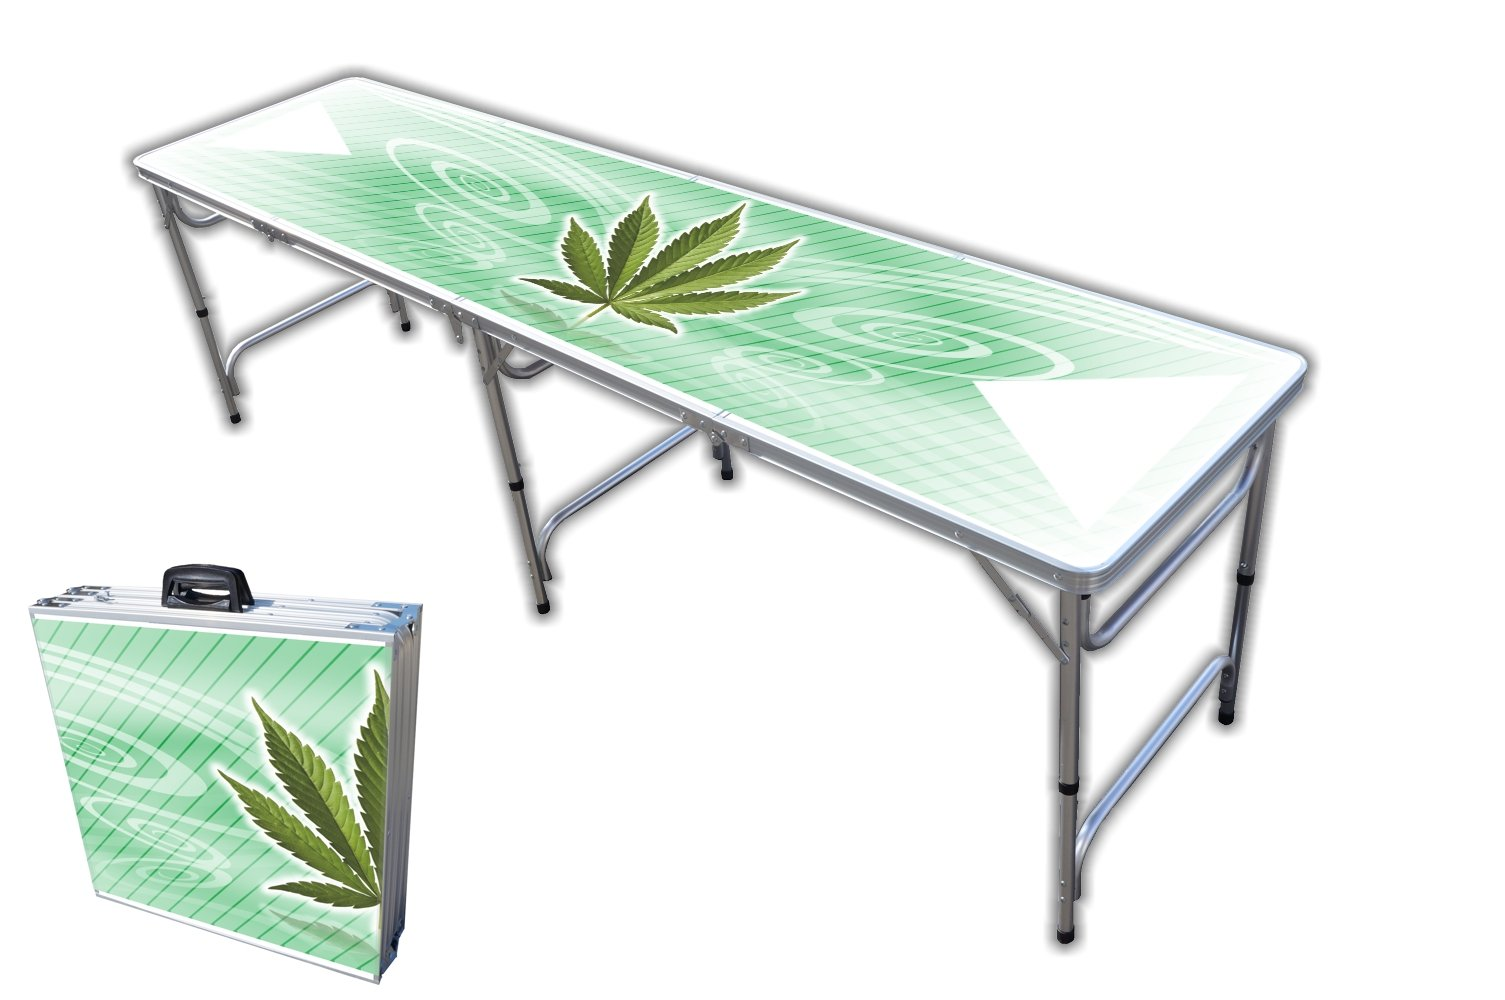 8-Foot Professional Beer Pong Table - High Times Graphic by PartyPongTables.com